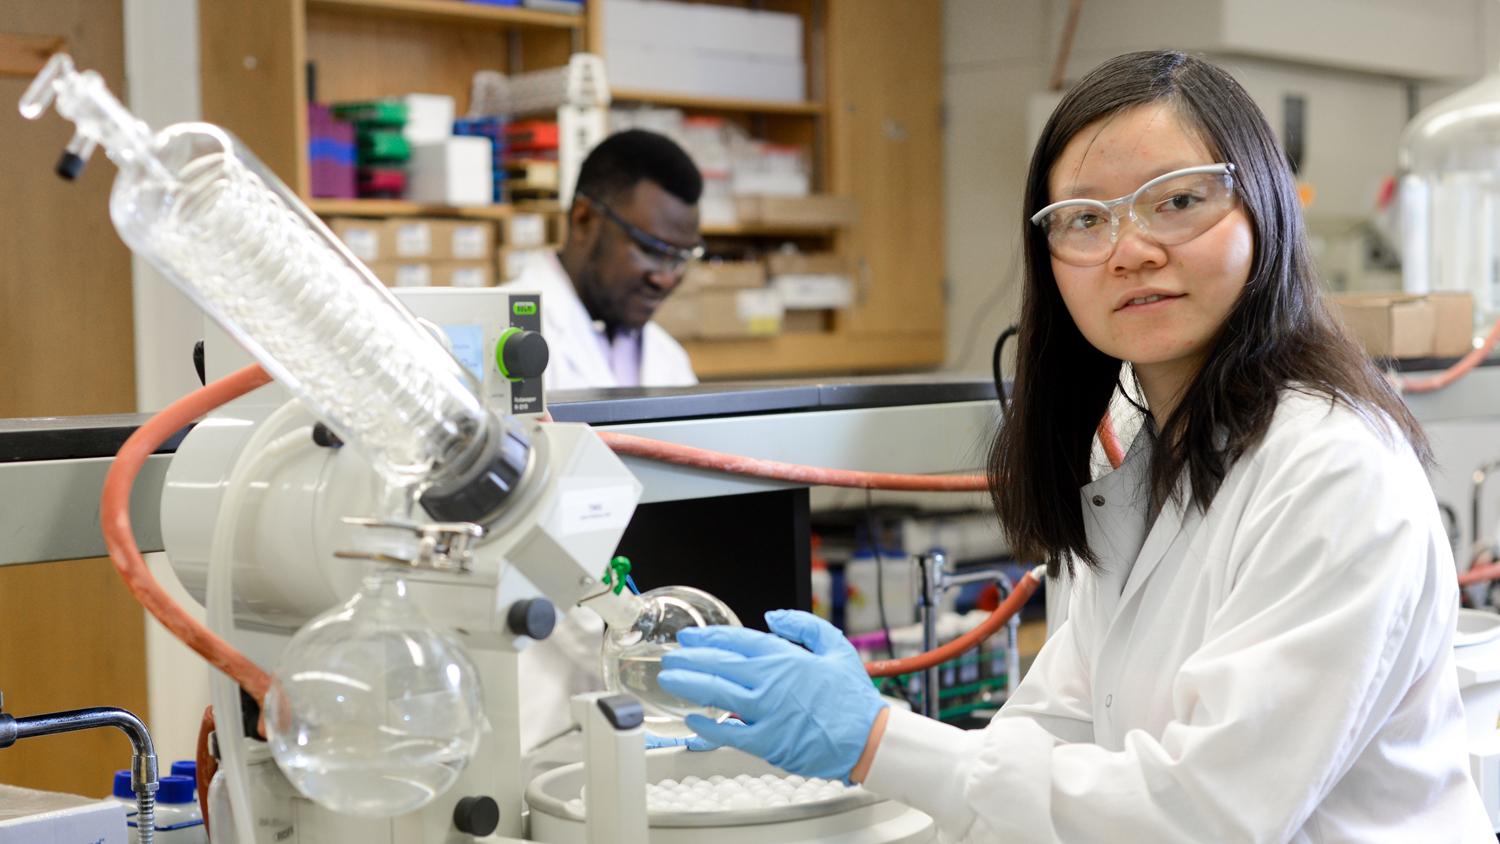 Graduate student working in lab